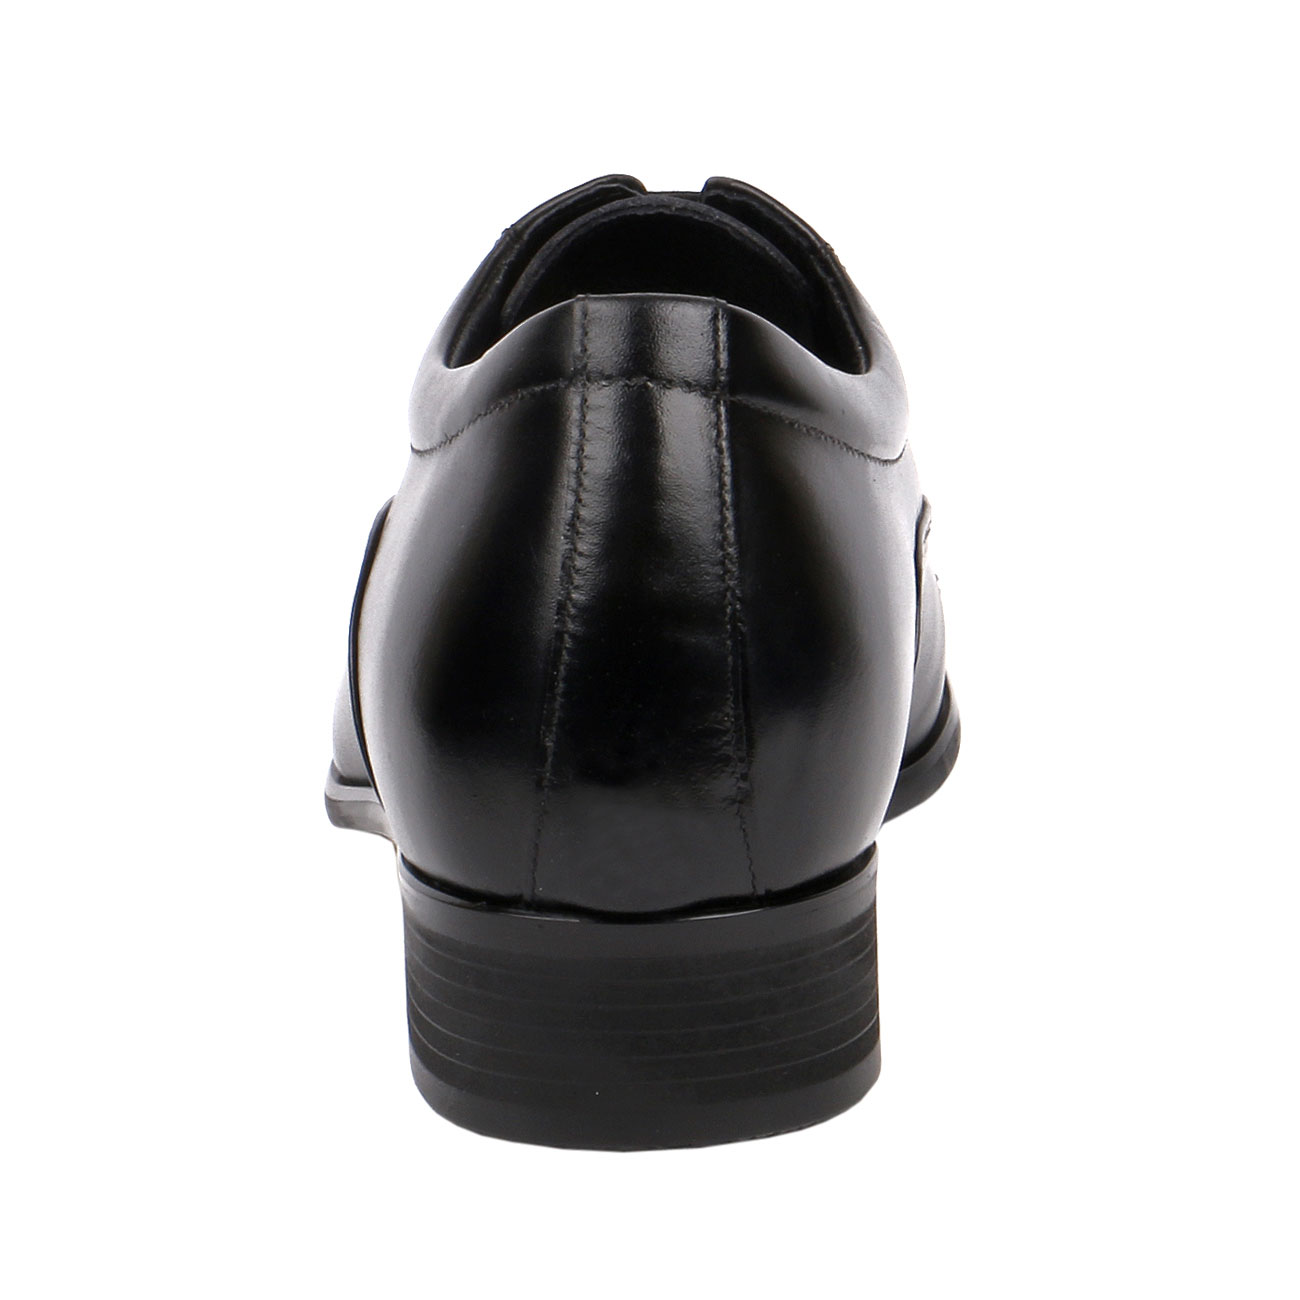 JW505 Limited Version Classic Cap-Toe Oxford Shoe Suiting Up For A Board Meeting or A Formal Event-3